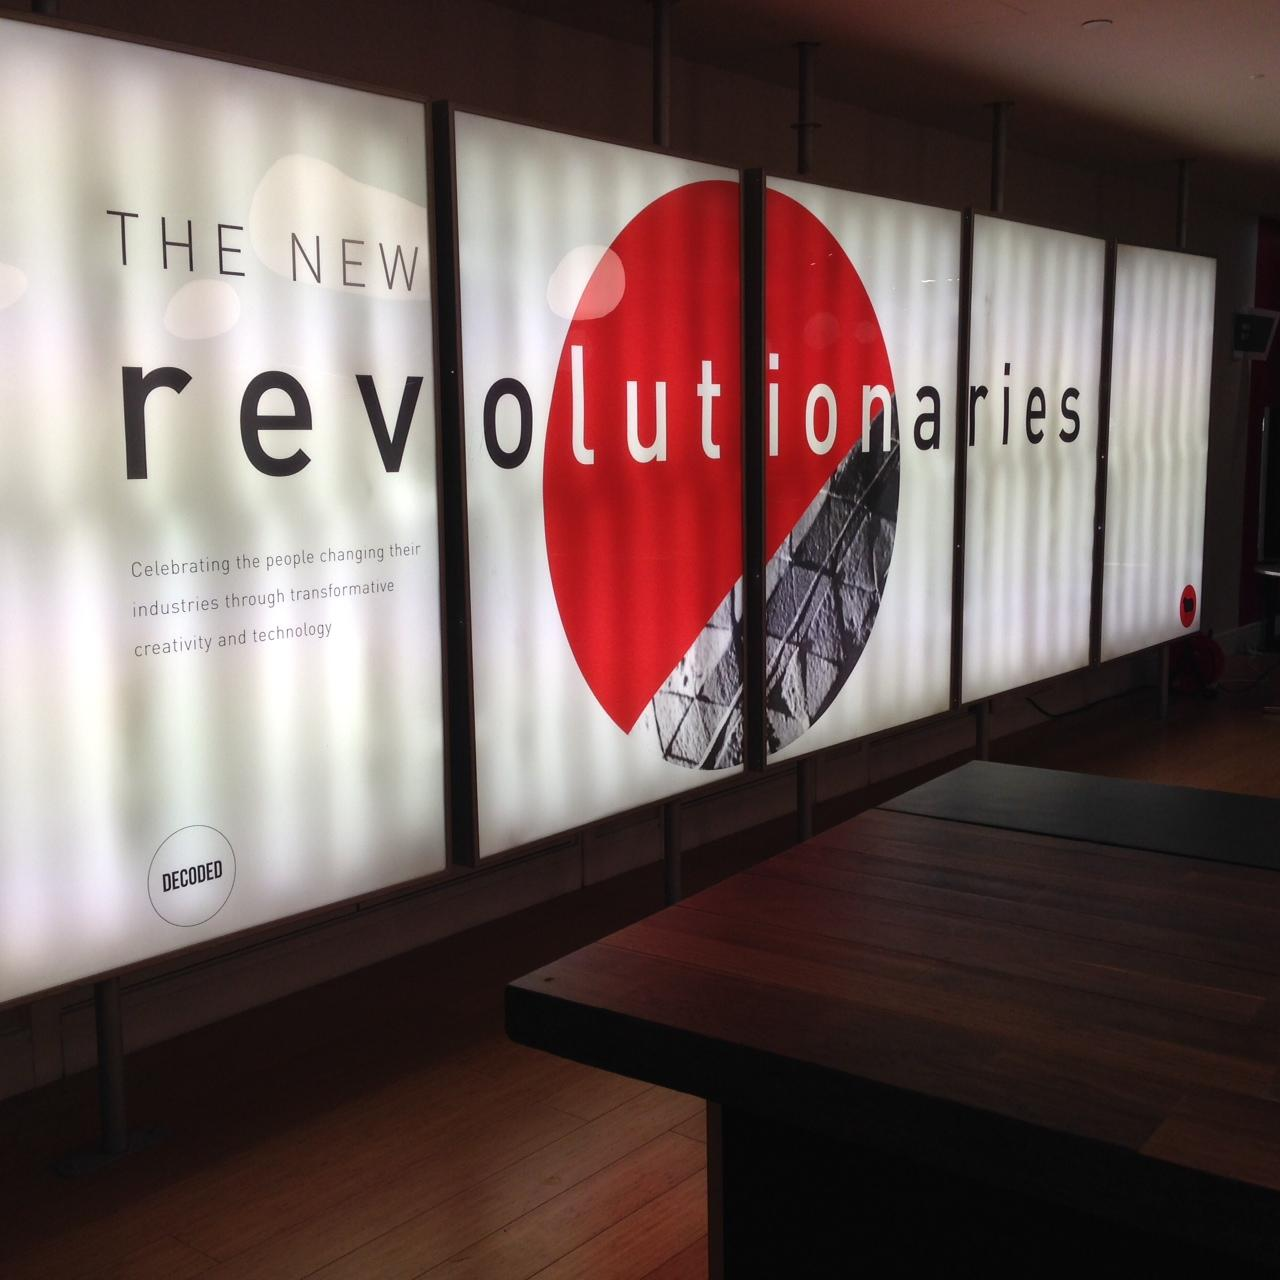 RT @MGBarbato: The New Revolutionaries who fuse creativity and technology together. @bbhlondon http://t.co/LcTW9ZCzOm http://t.co/CQJ8Rmz81z